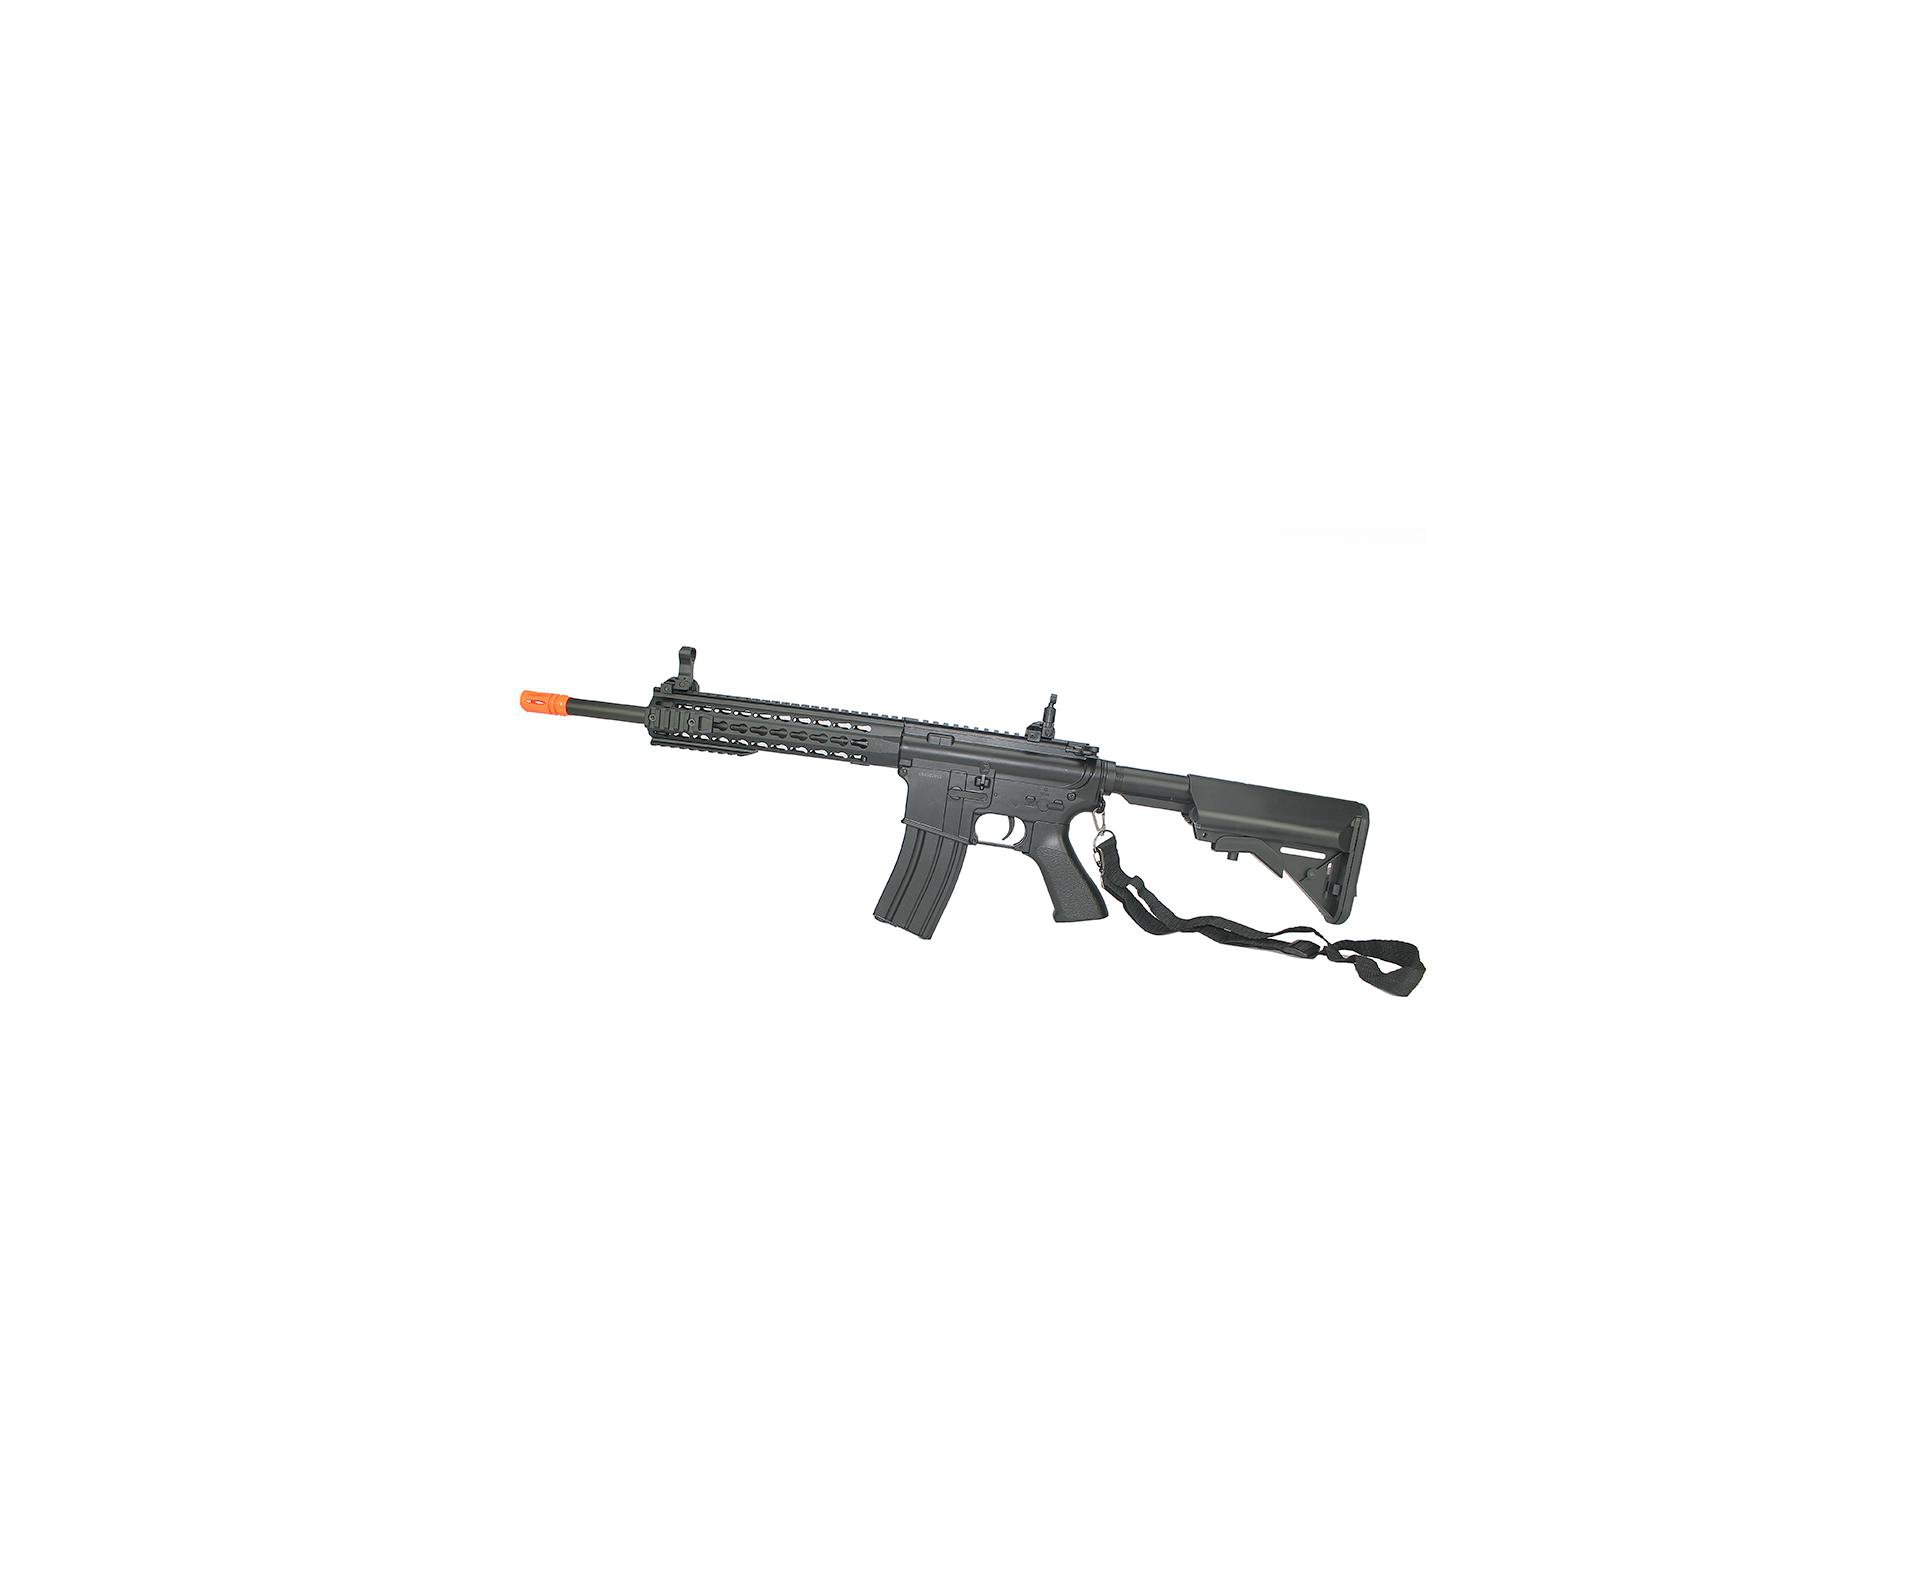 Rifle De Airsoft M4a1 Ris Black Cal 6mm - Bivolt - Cm515 - Cyma